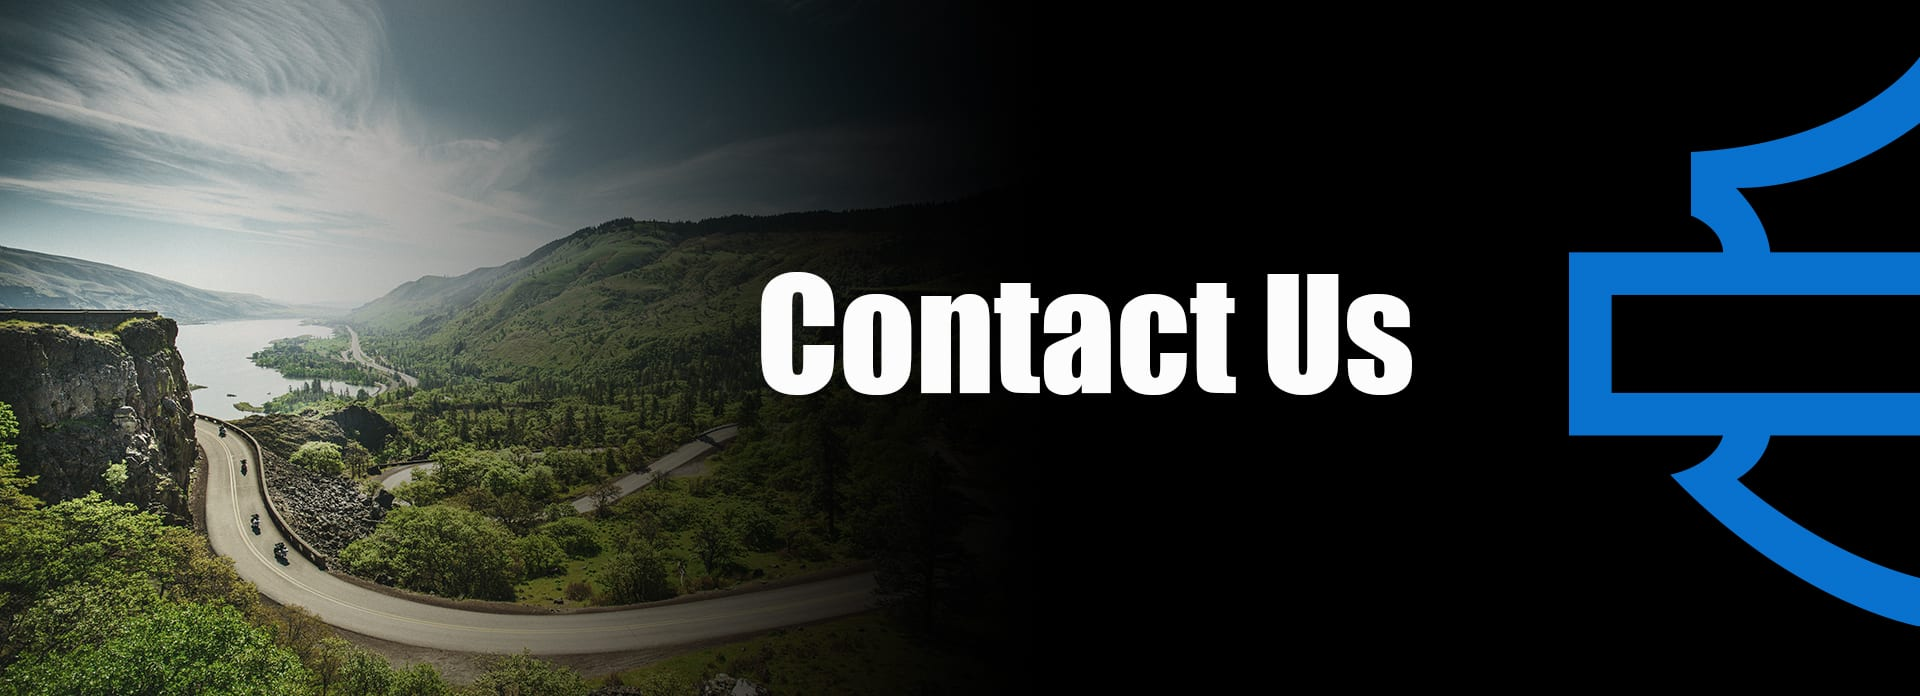 1606939382_Contact Us Banner